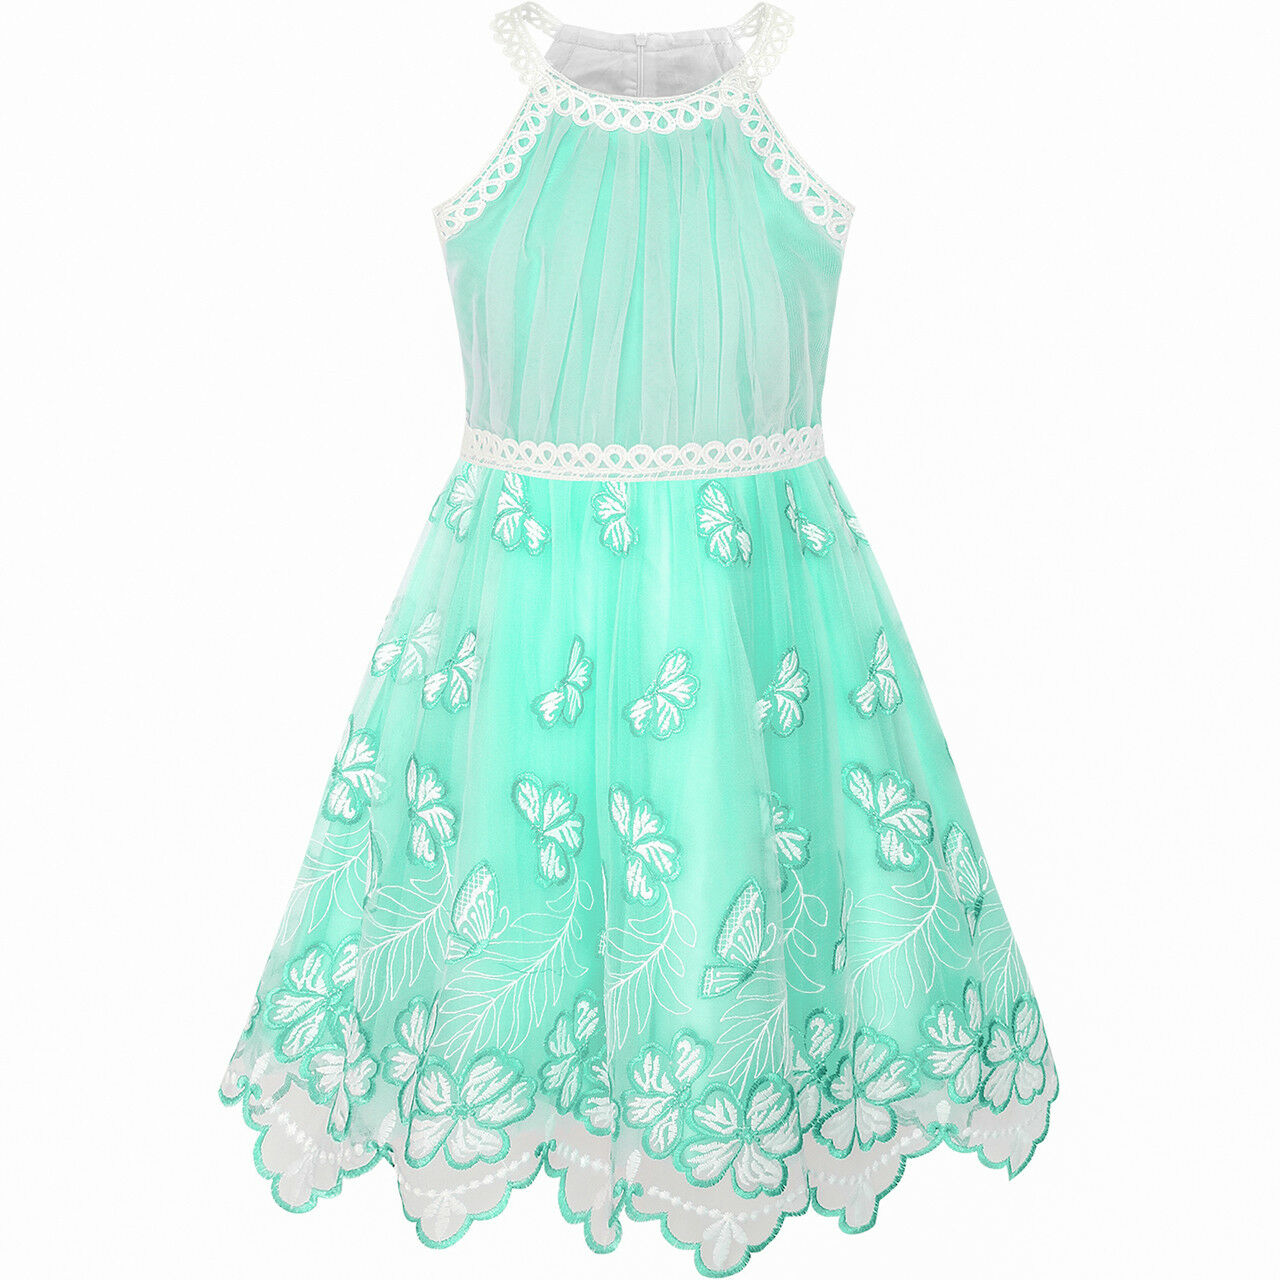 Girls Dress Turquoise Butterfly Embroidered Halter Dress Party Size ...